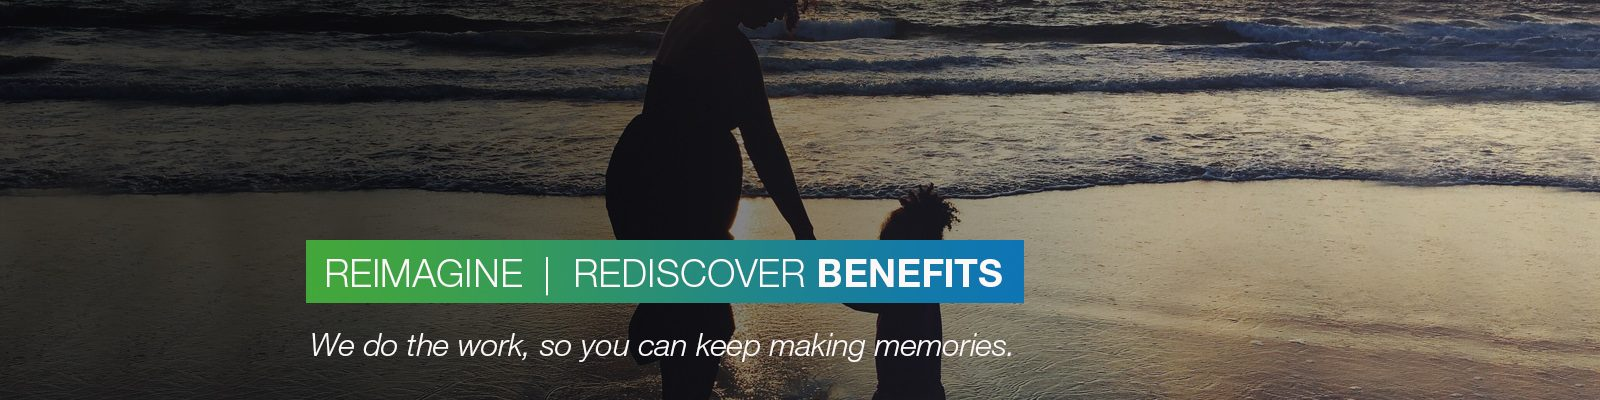 REIMAGINE   REDISCOVER BENEFITS: We do the work, so you can keep making memories.